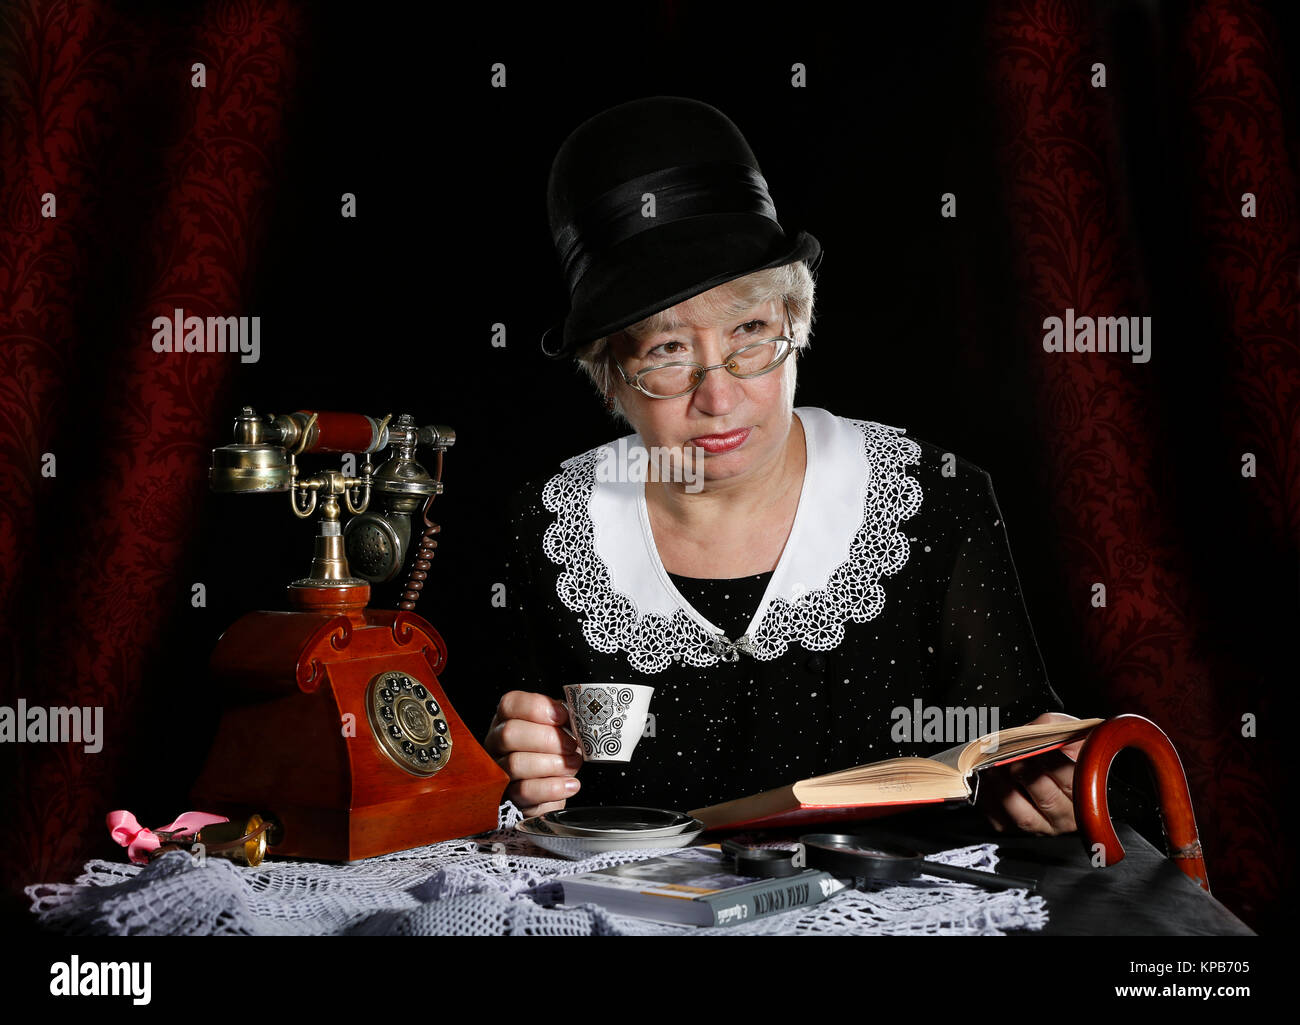 The old woman is like a Miss Marple,woman Miss Marpul, English detective character, woman detective, from the book - Stock Image